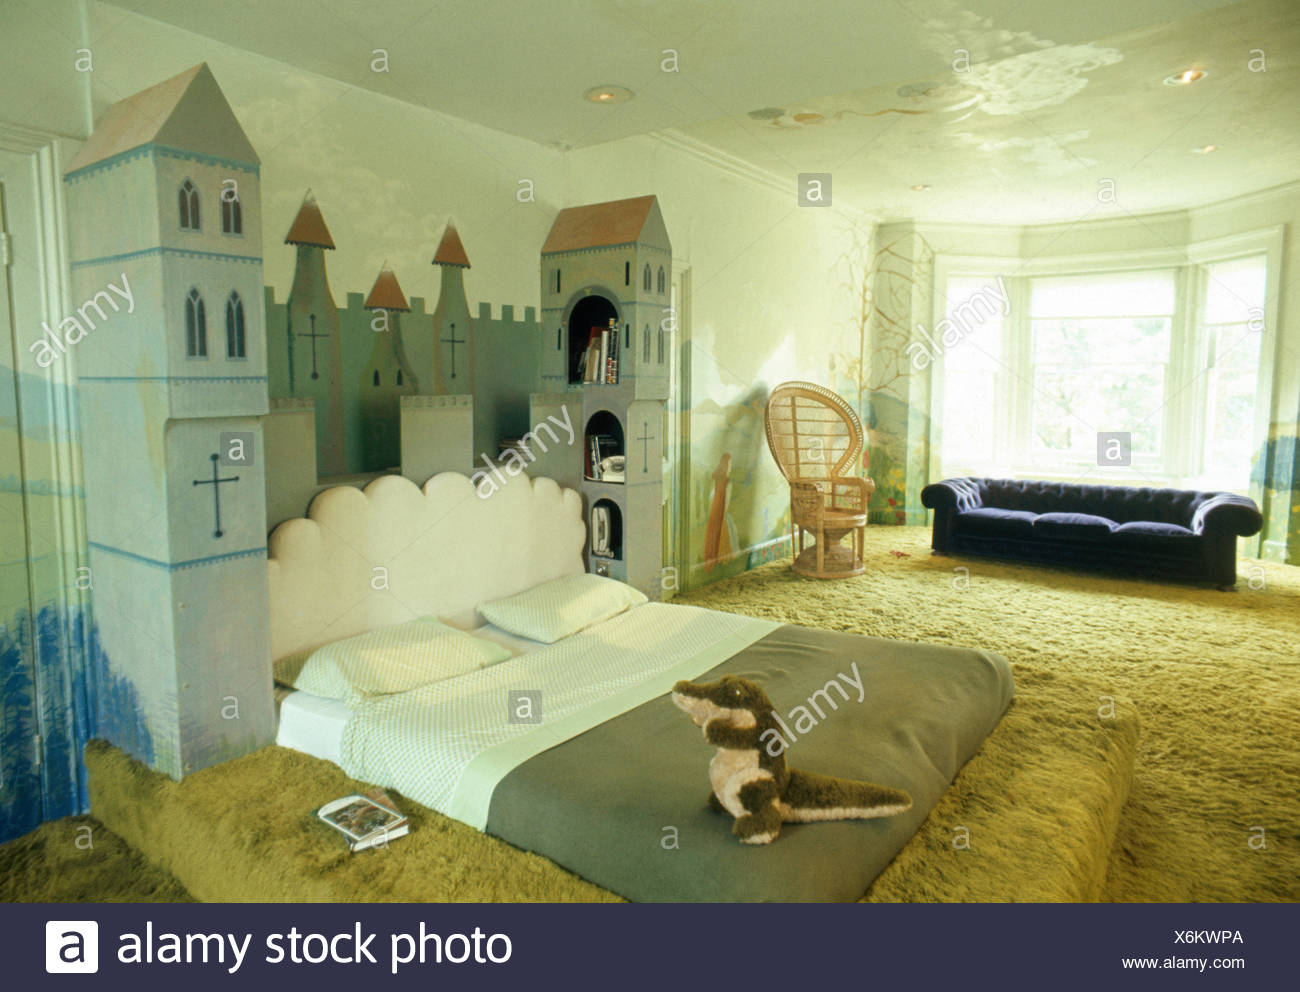 Castle themed bed in child's seventies bedroom with shag pile carpet - Stock Image